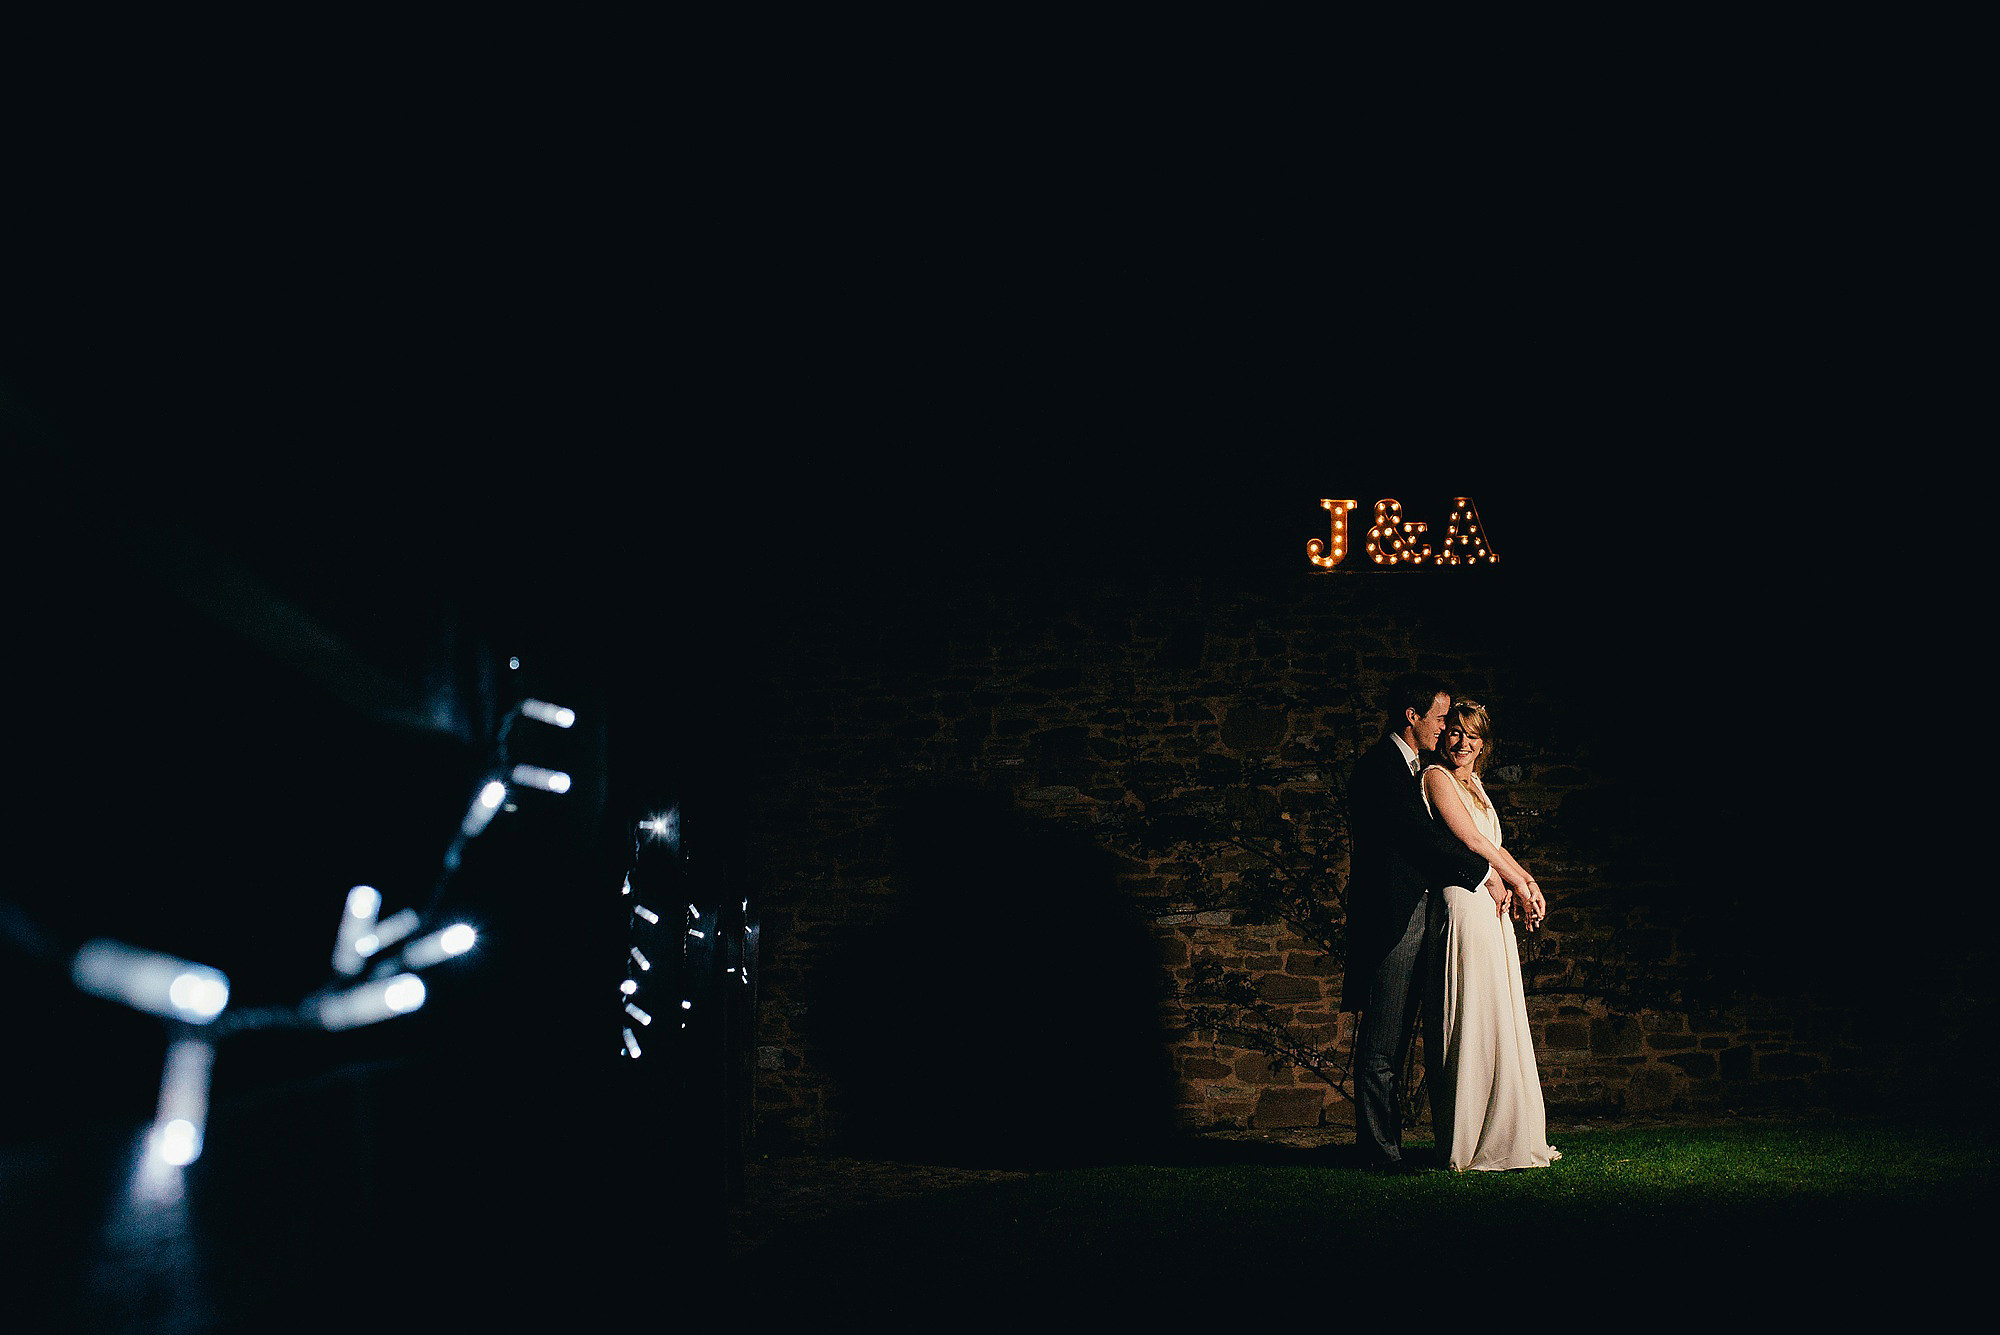 night time portrait for bride and groom fairy lights